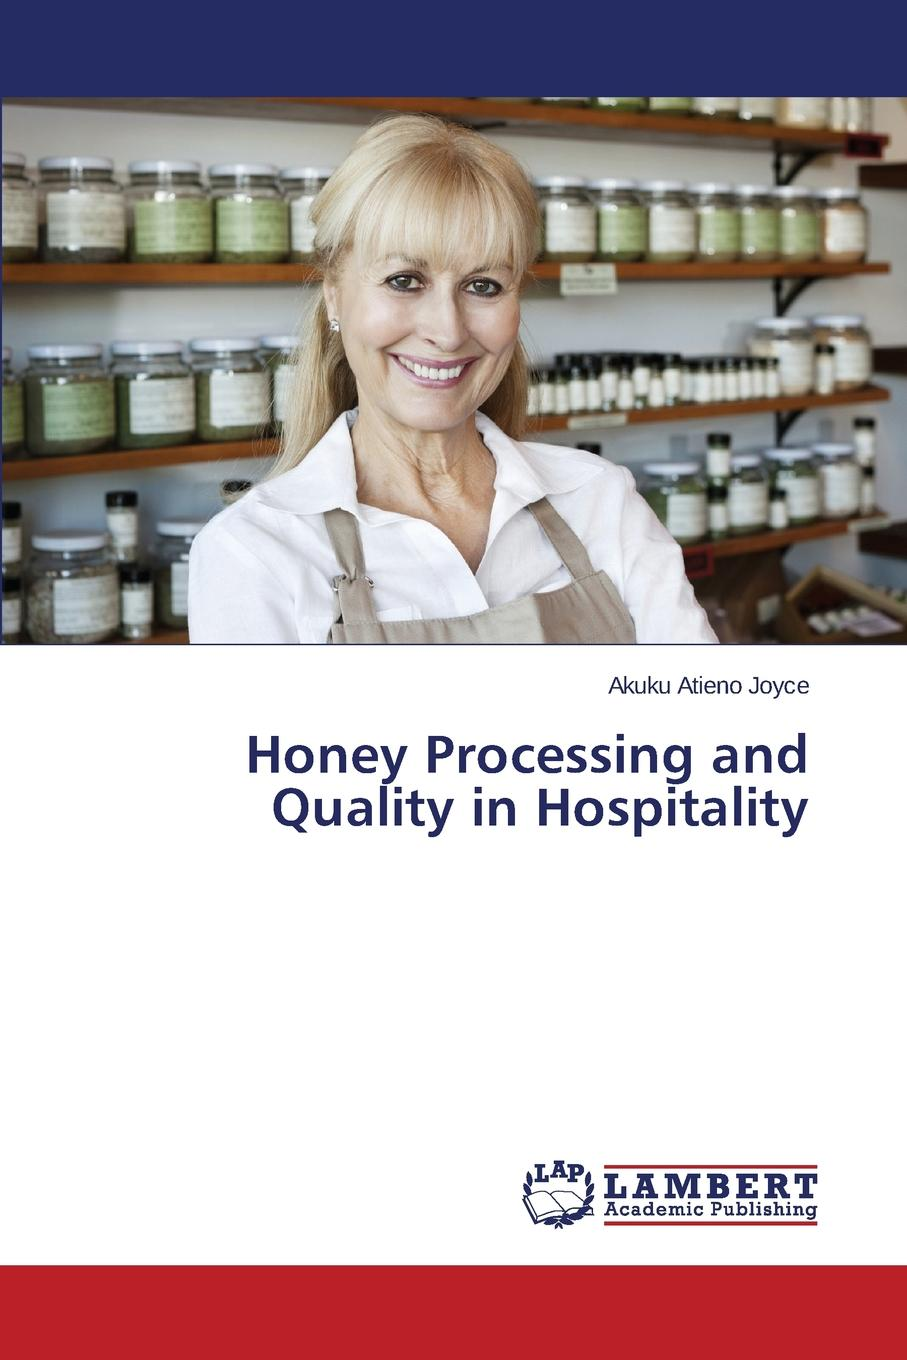 Atieno Joyce Akuku Honey Processing and Quality in Hospitality making your mark in hotel industry jobs